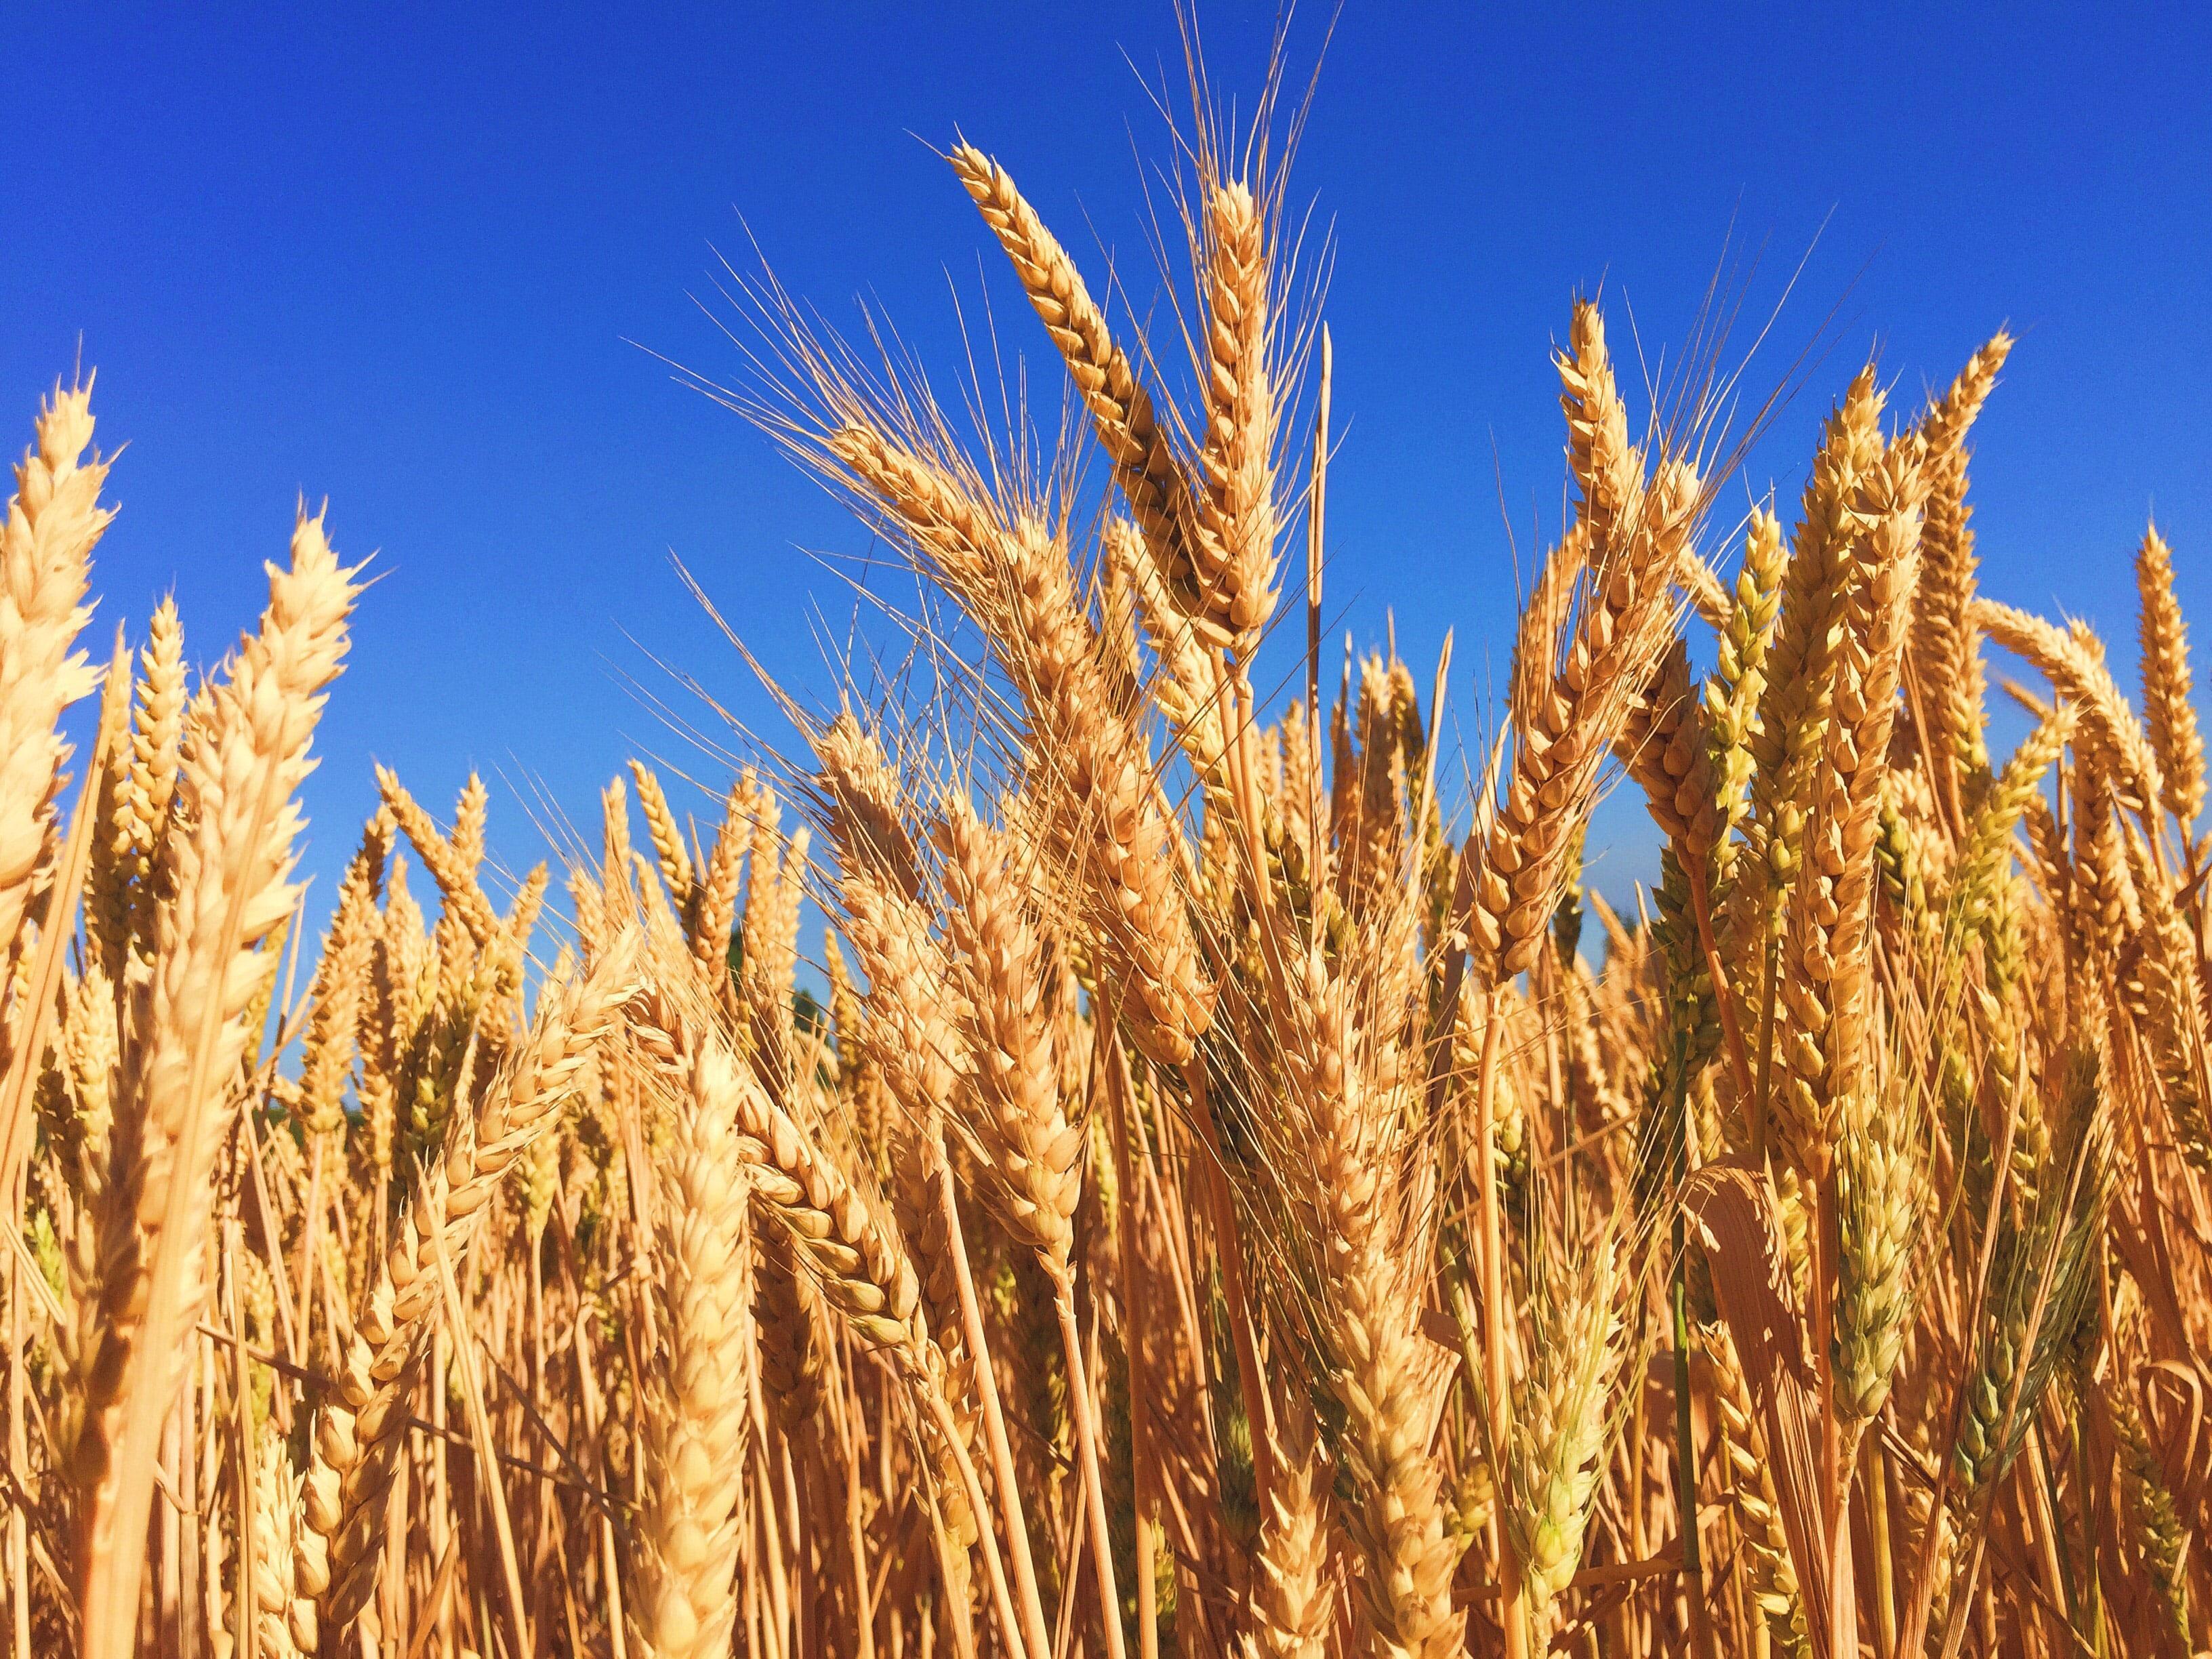 Stalks of wheat with a blue sky in the background